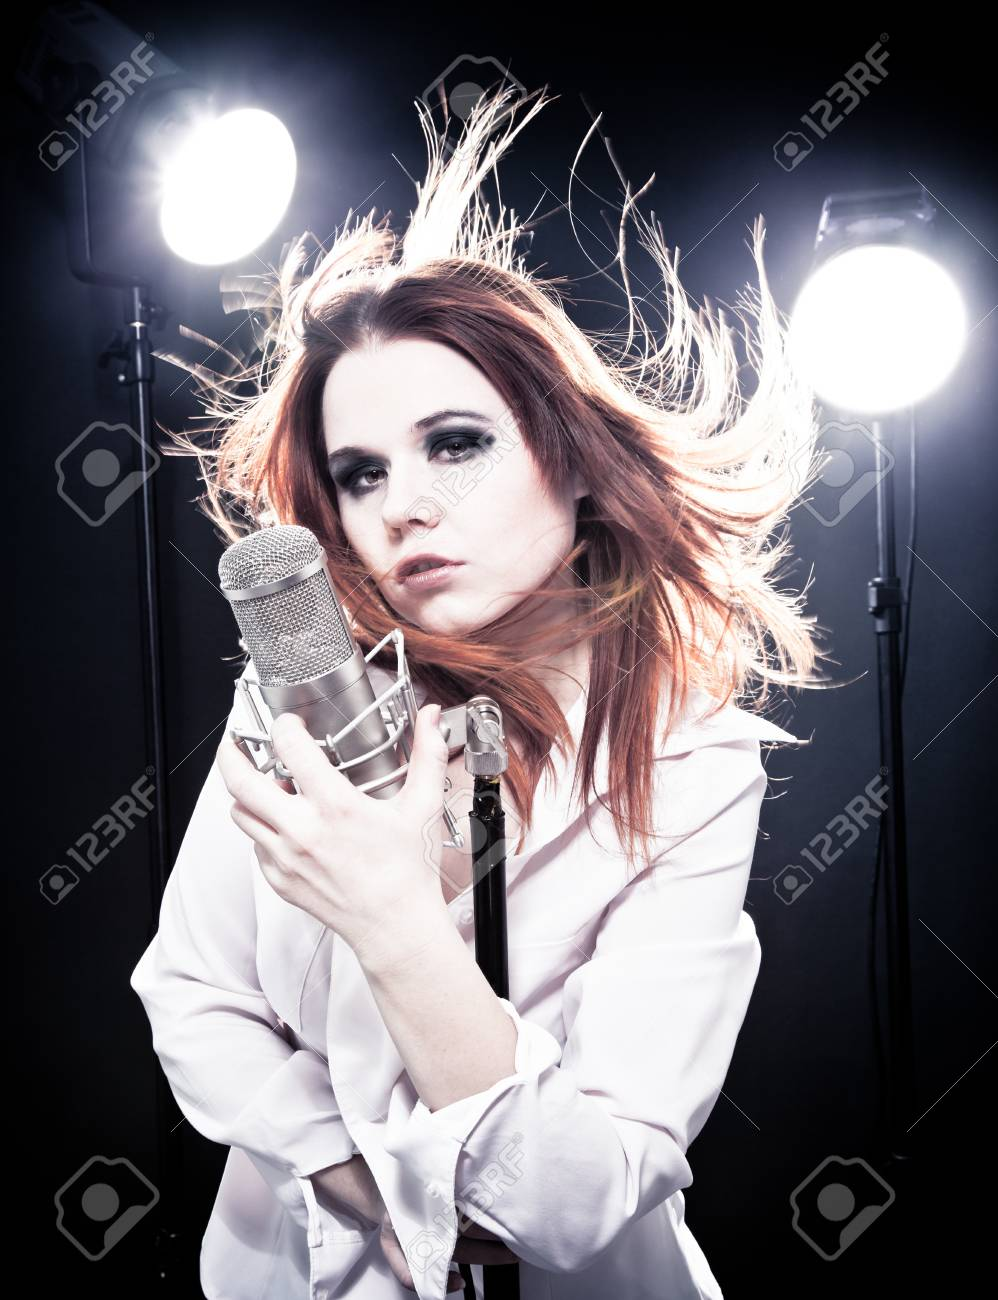 Picture of woman with microphone Stock Photo - 17275720